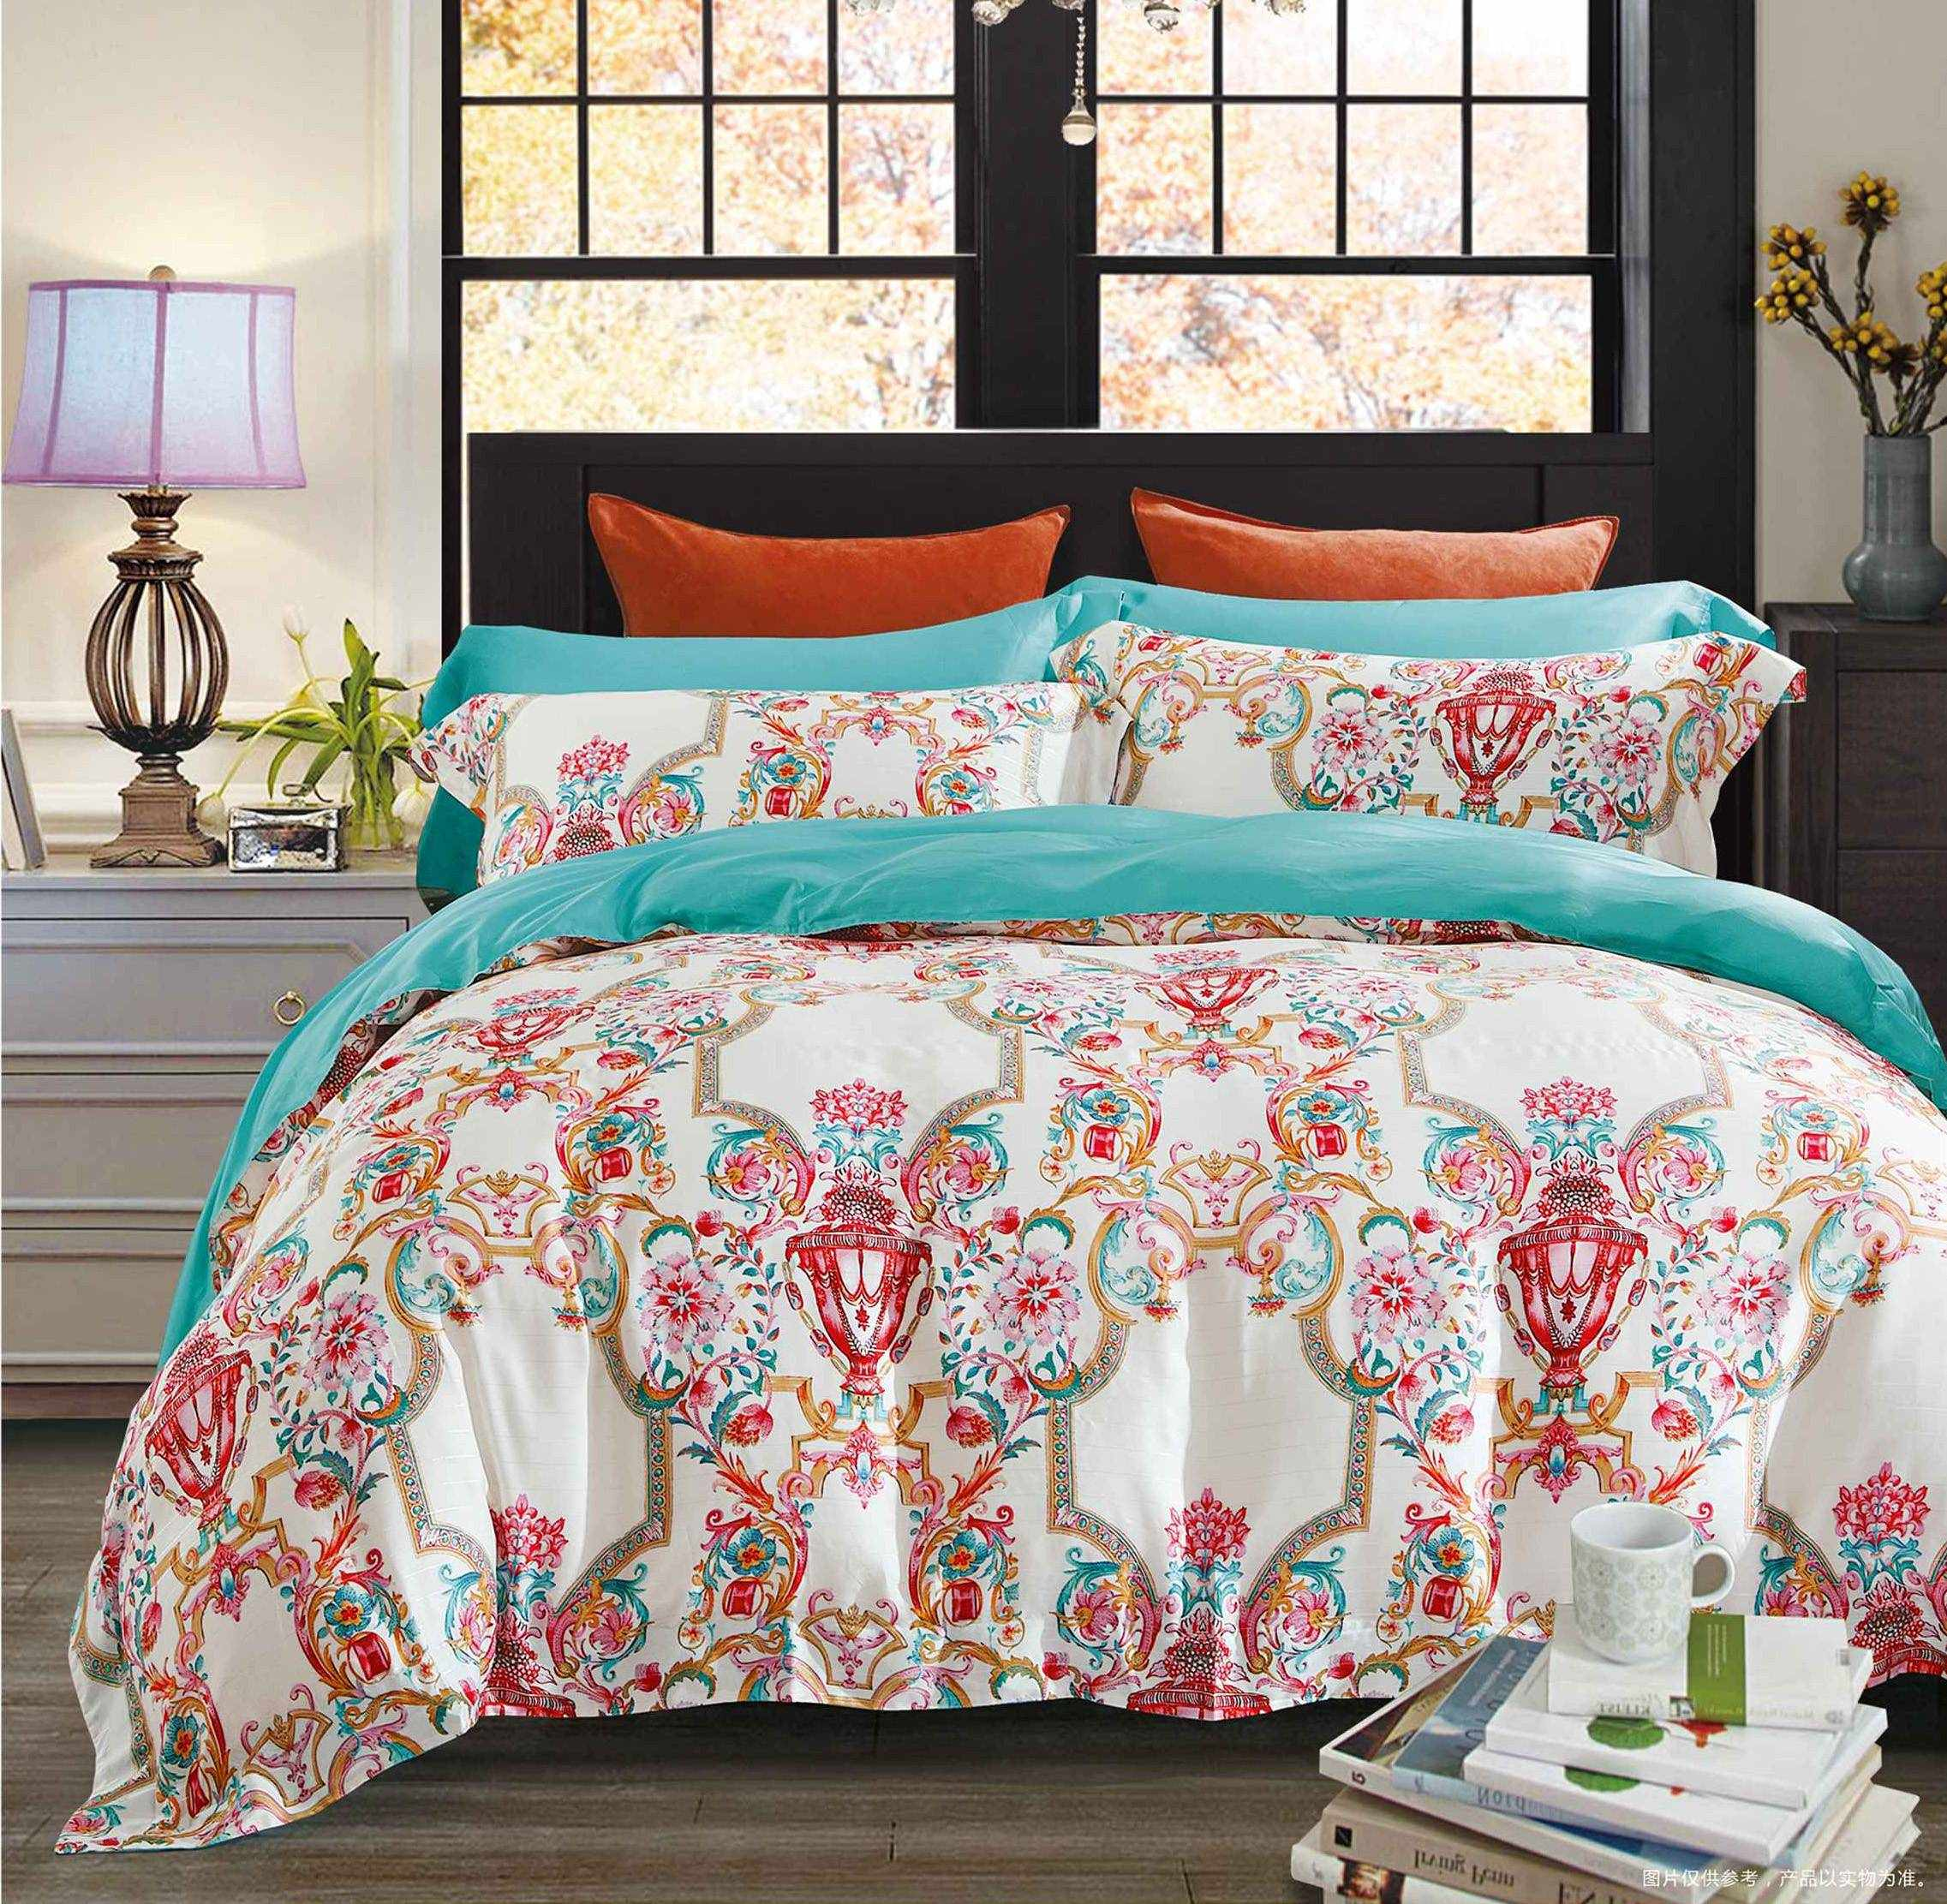 Sophisticated Design Bedding Product Made in China 170757